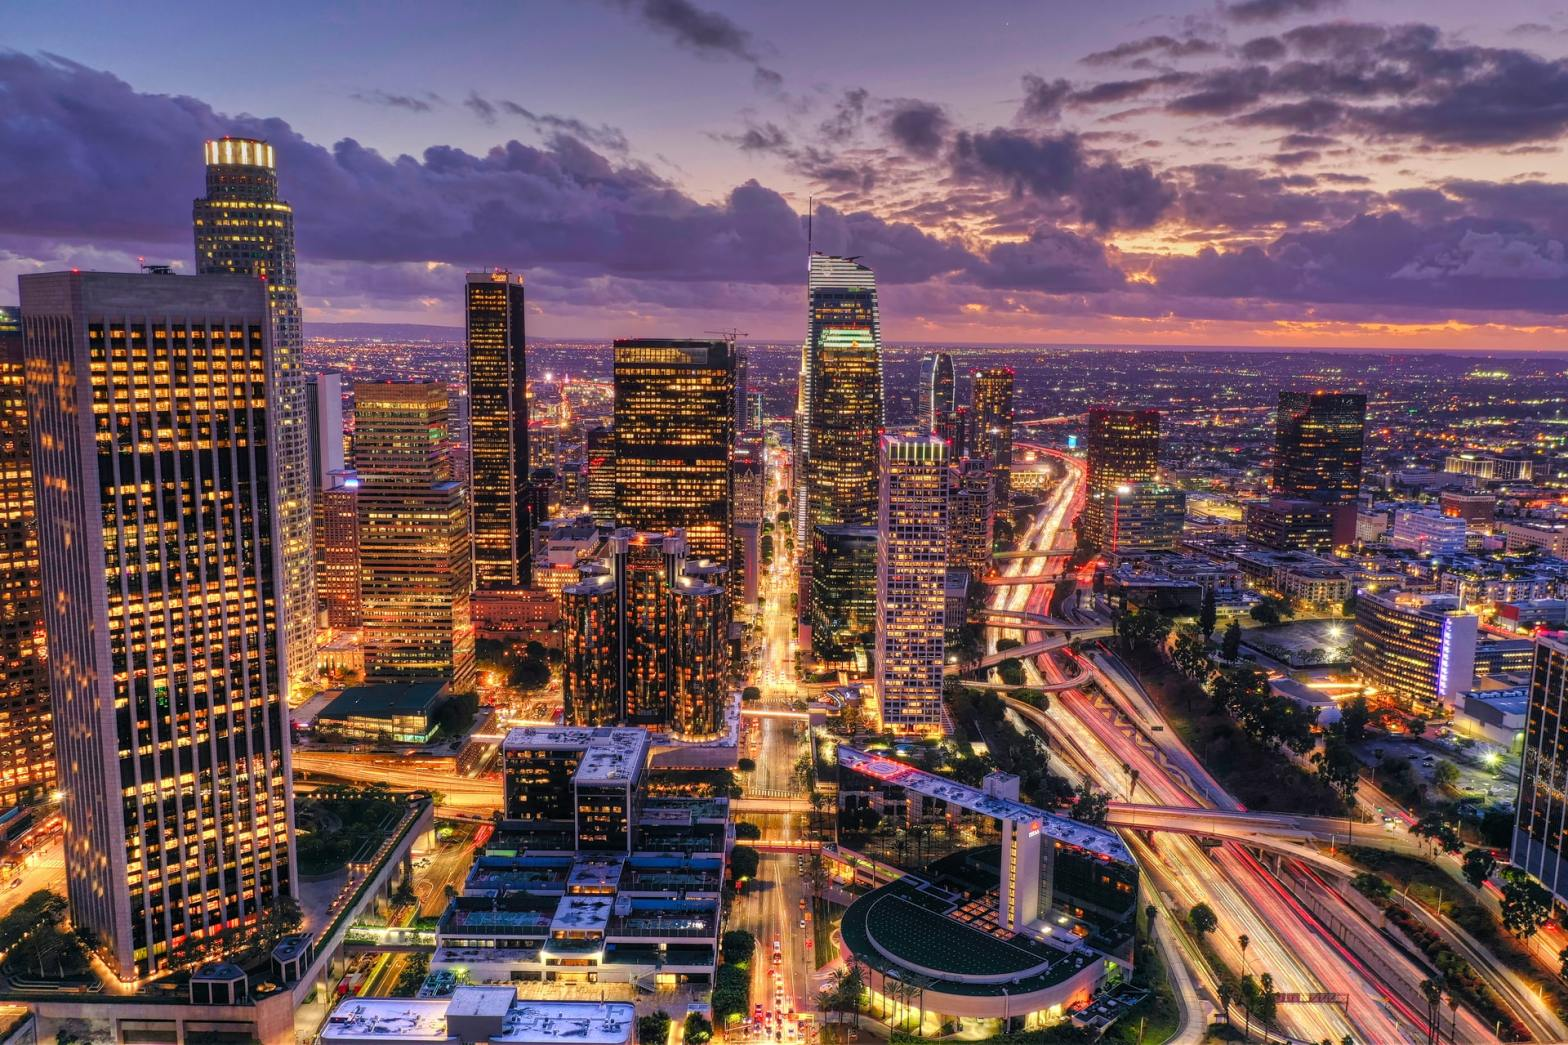 Los Angeles at night-pros and cons